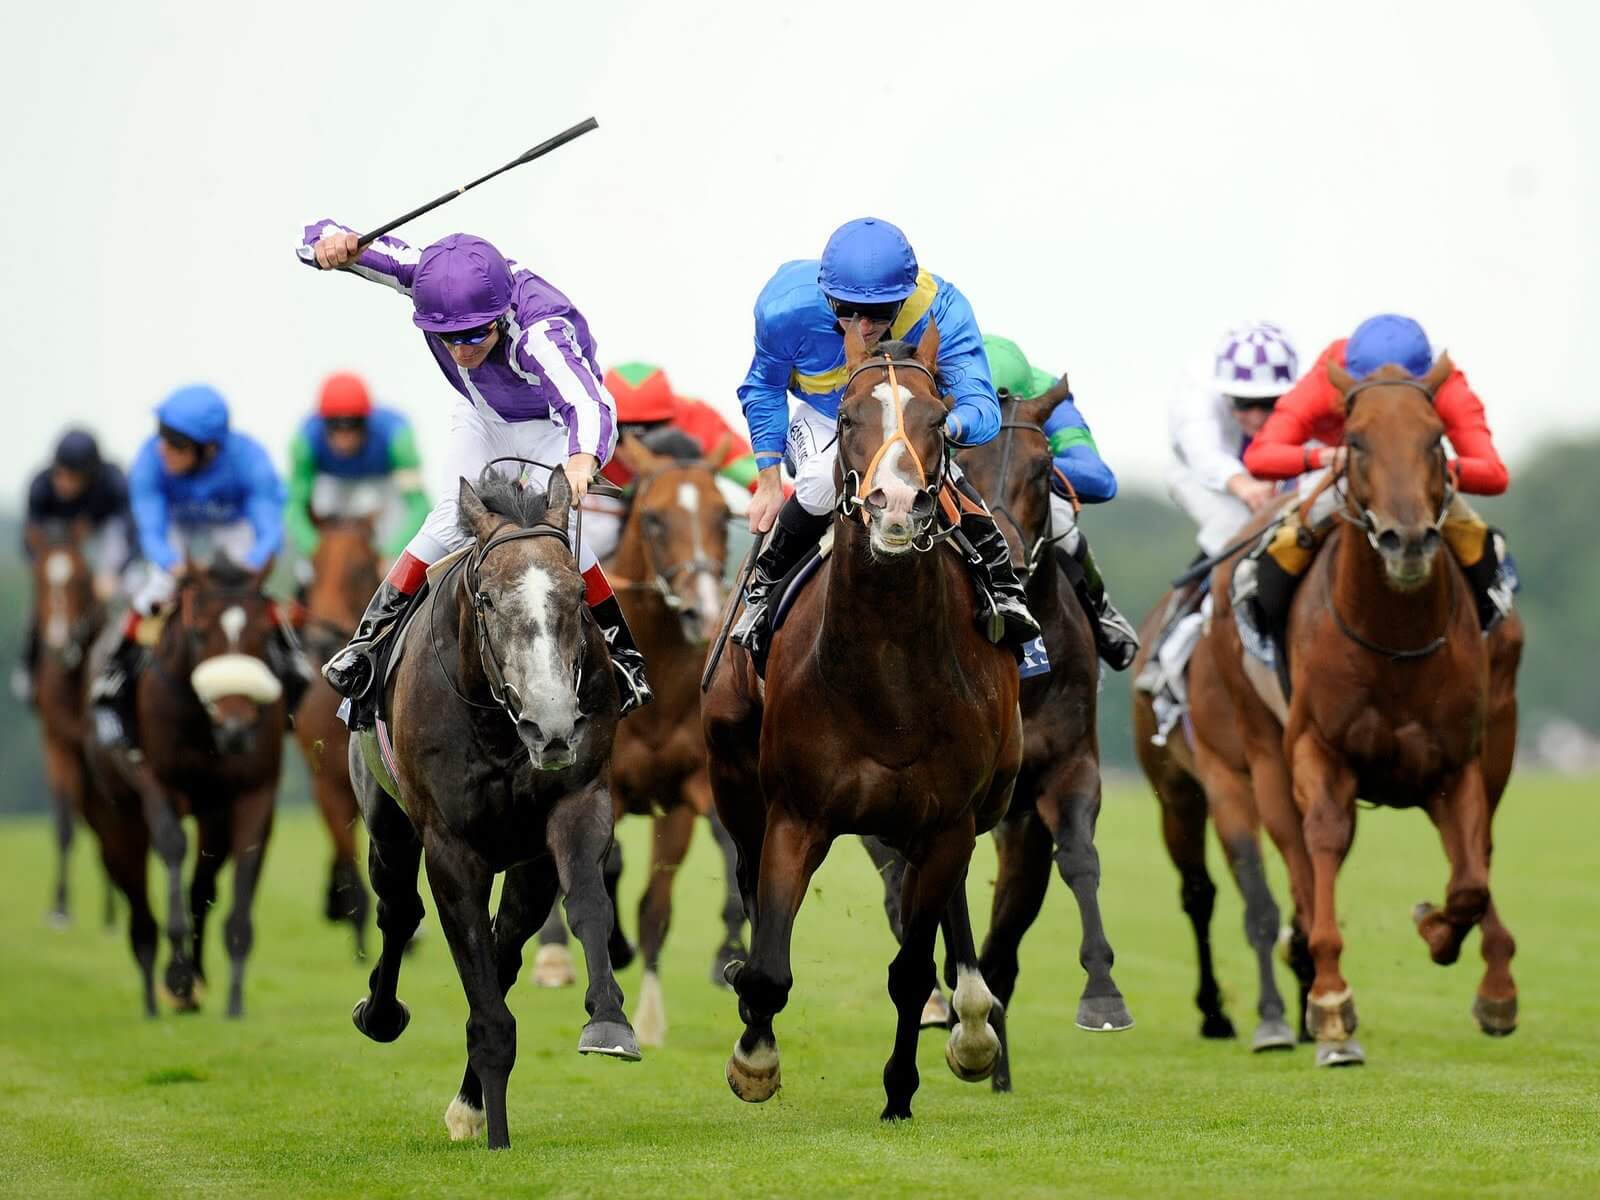 horse racing bets online bet schedule today